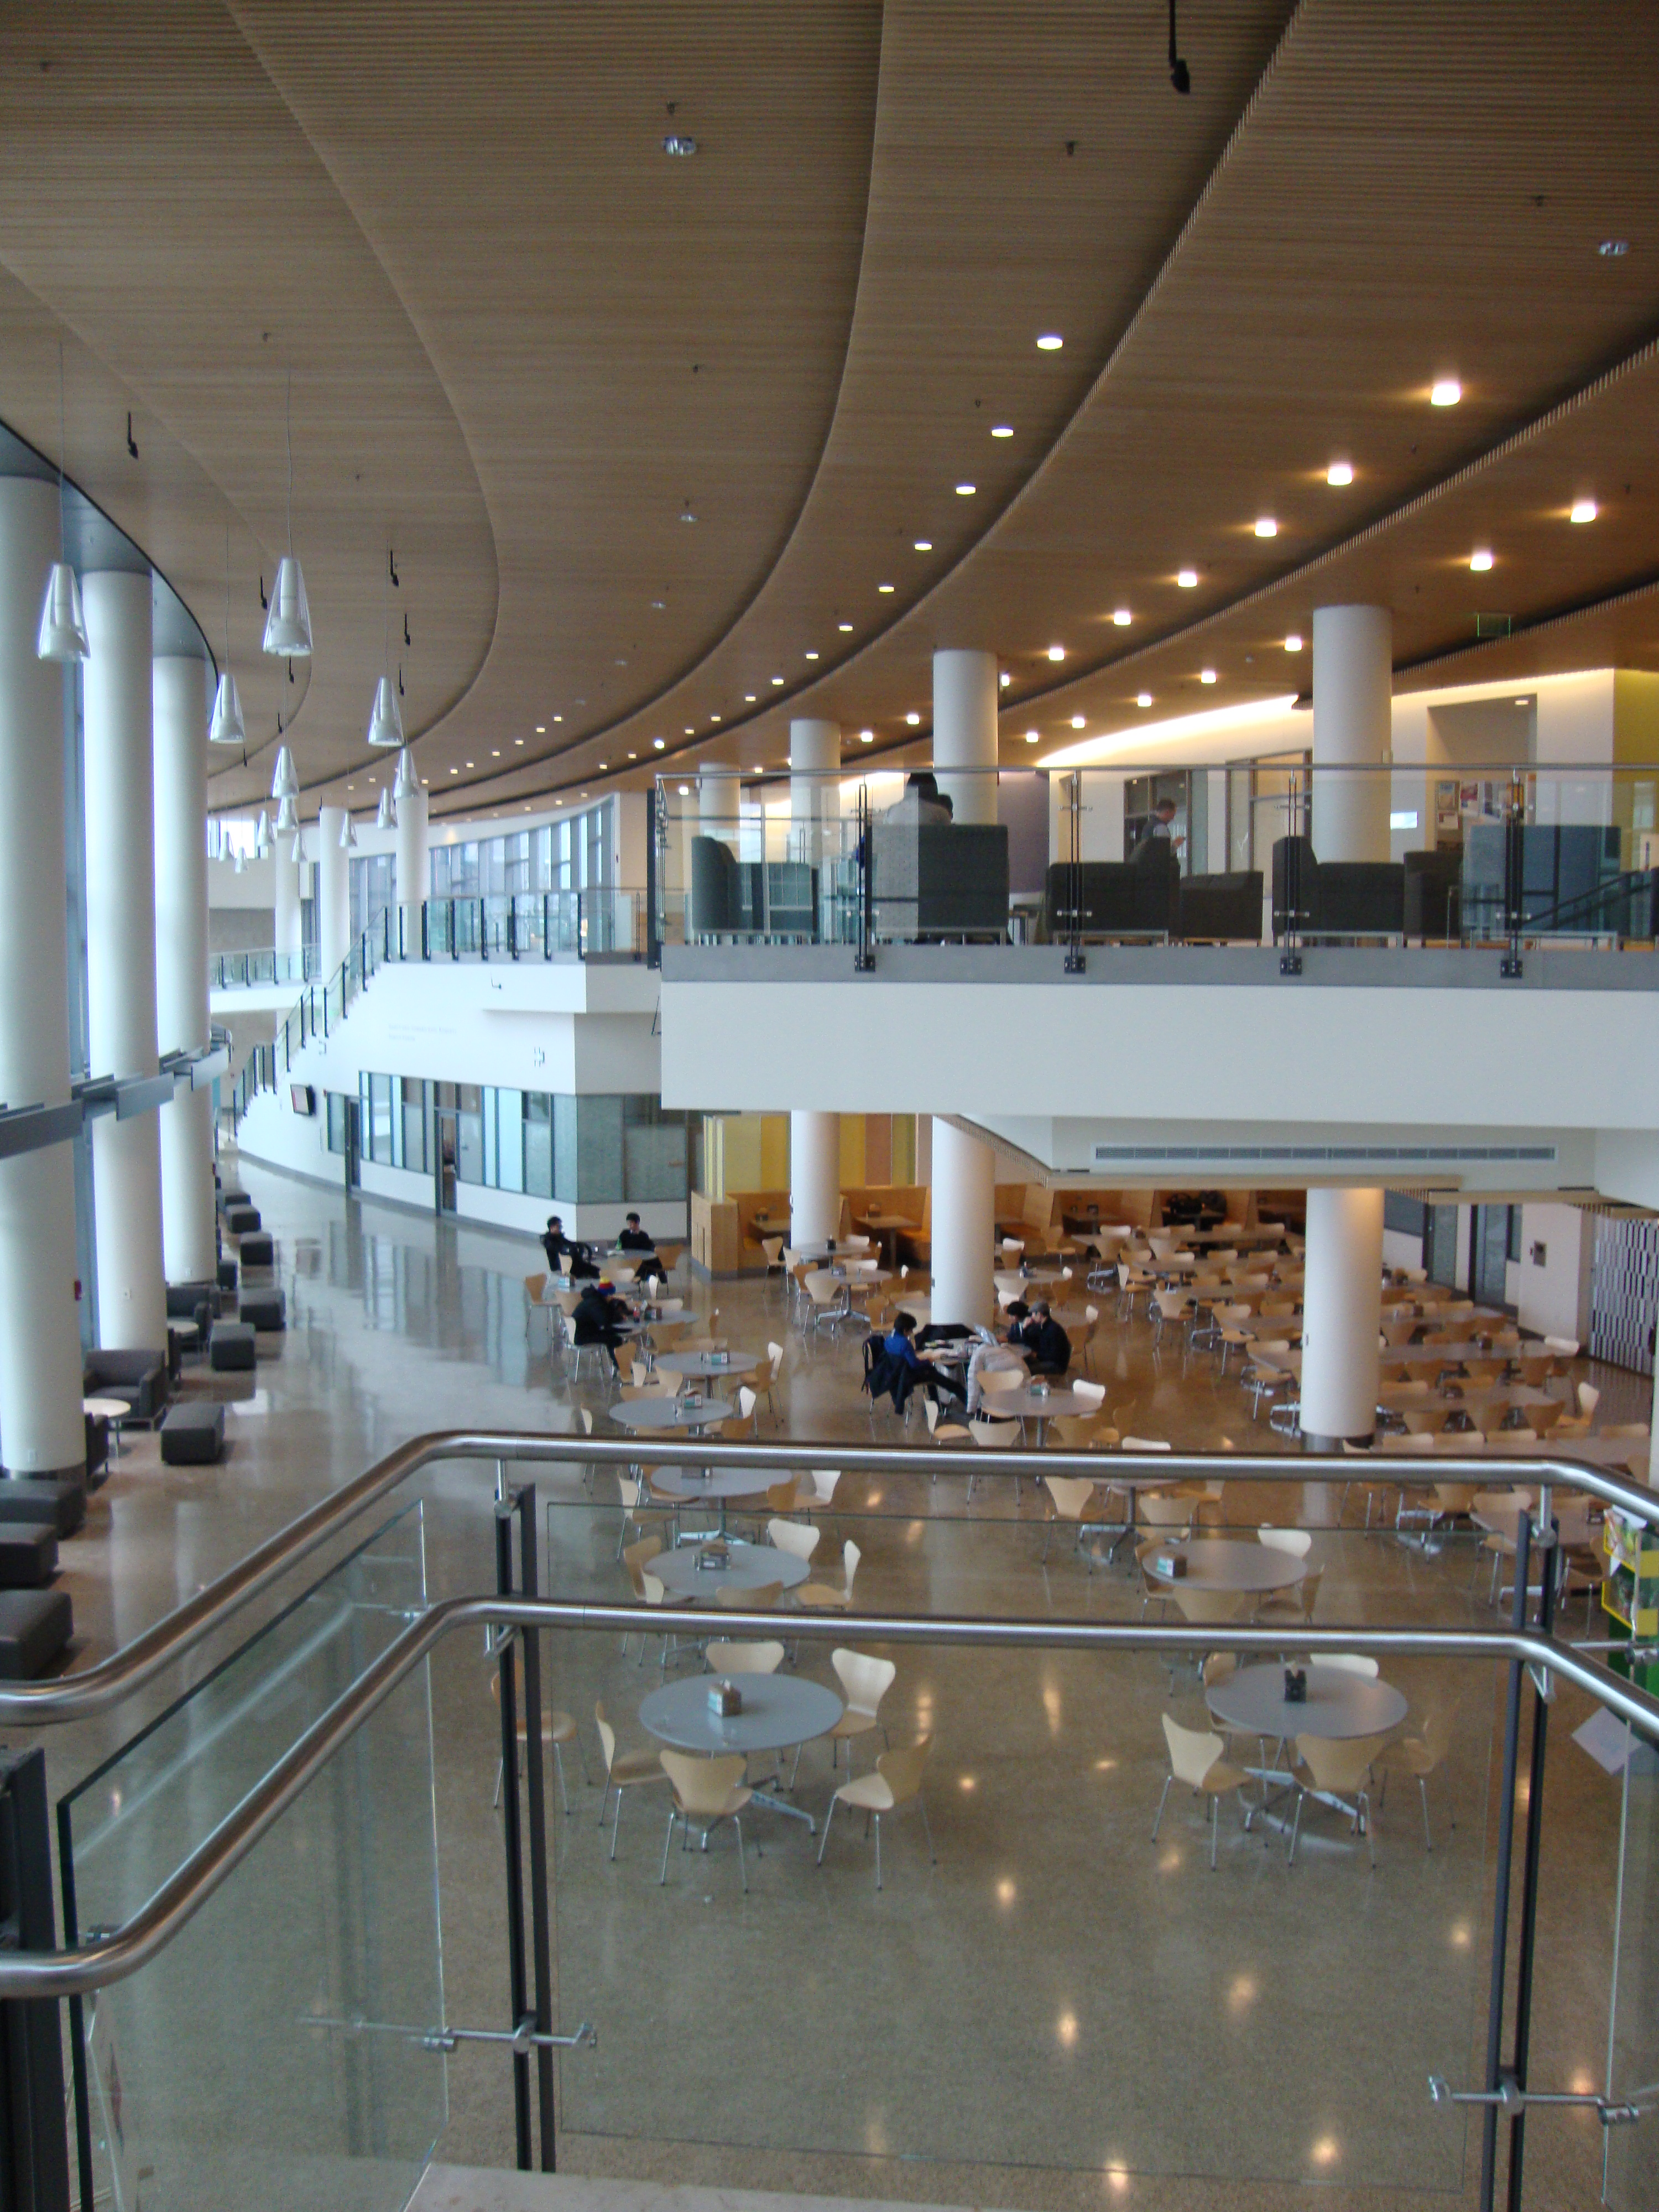 Visit to Boston & MIT Impressions | The adventures of a MBA student